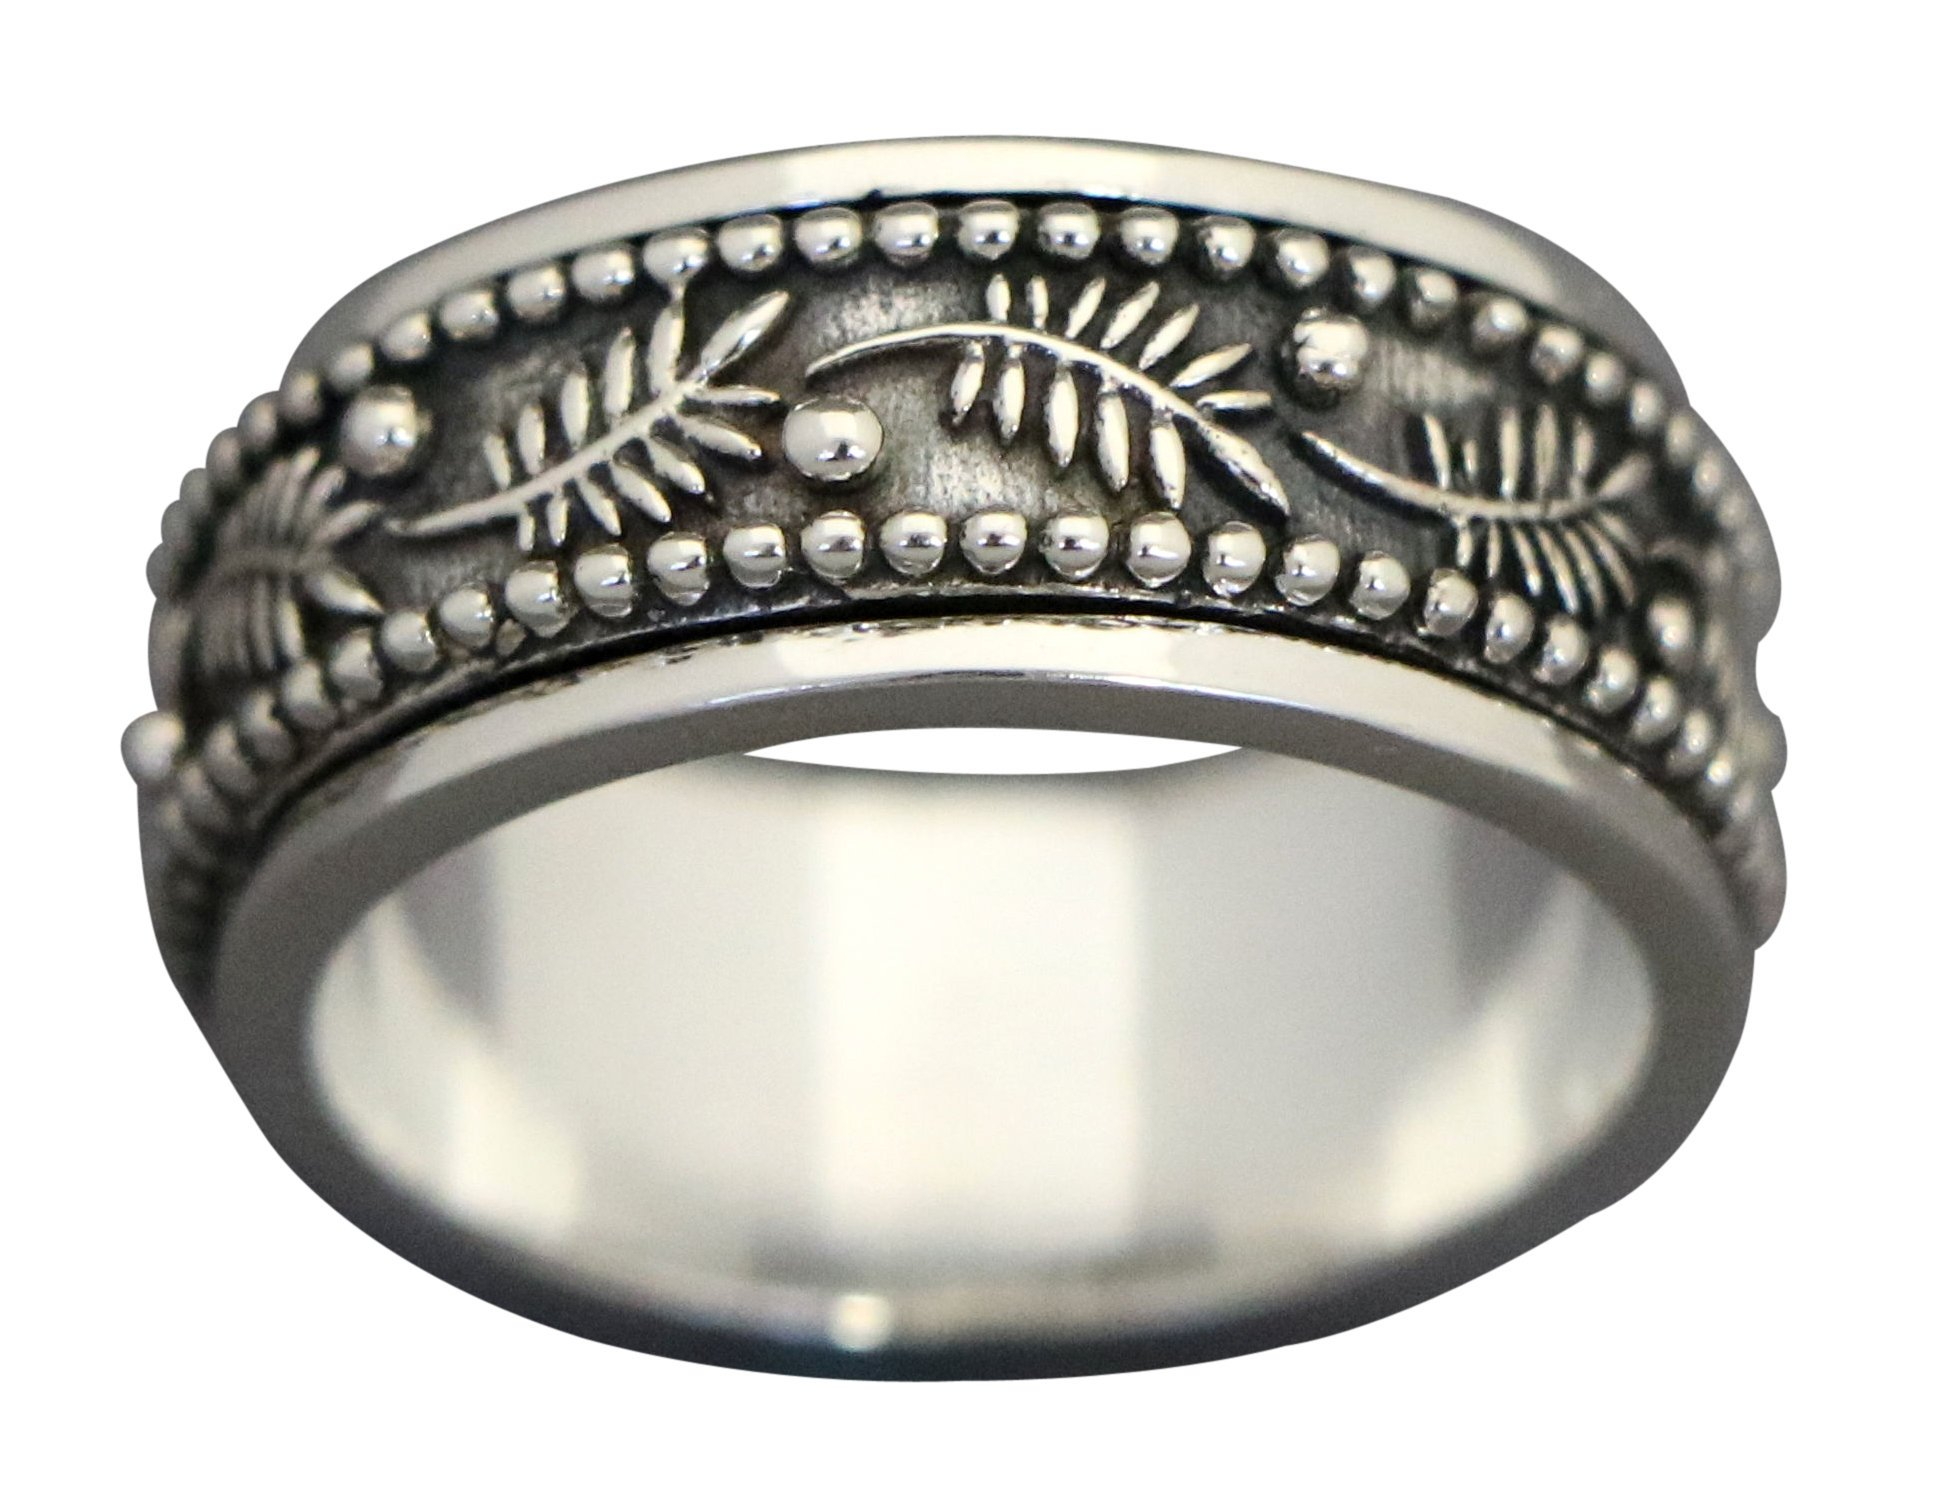 Energy Stone PALM LEAF Meditation Spinning Ring in Sterling Silver Designed by Viola So (Style# US42) (10) by Energy Stone (Image #4)